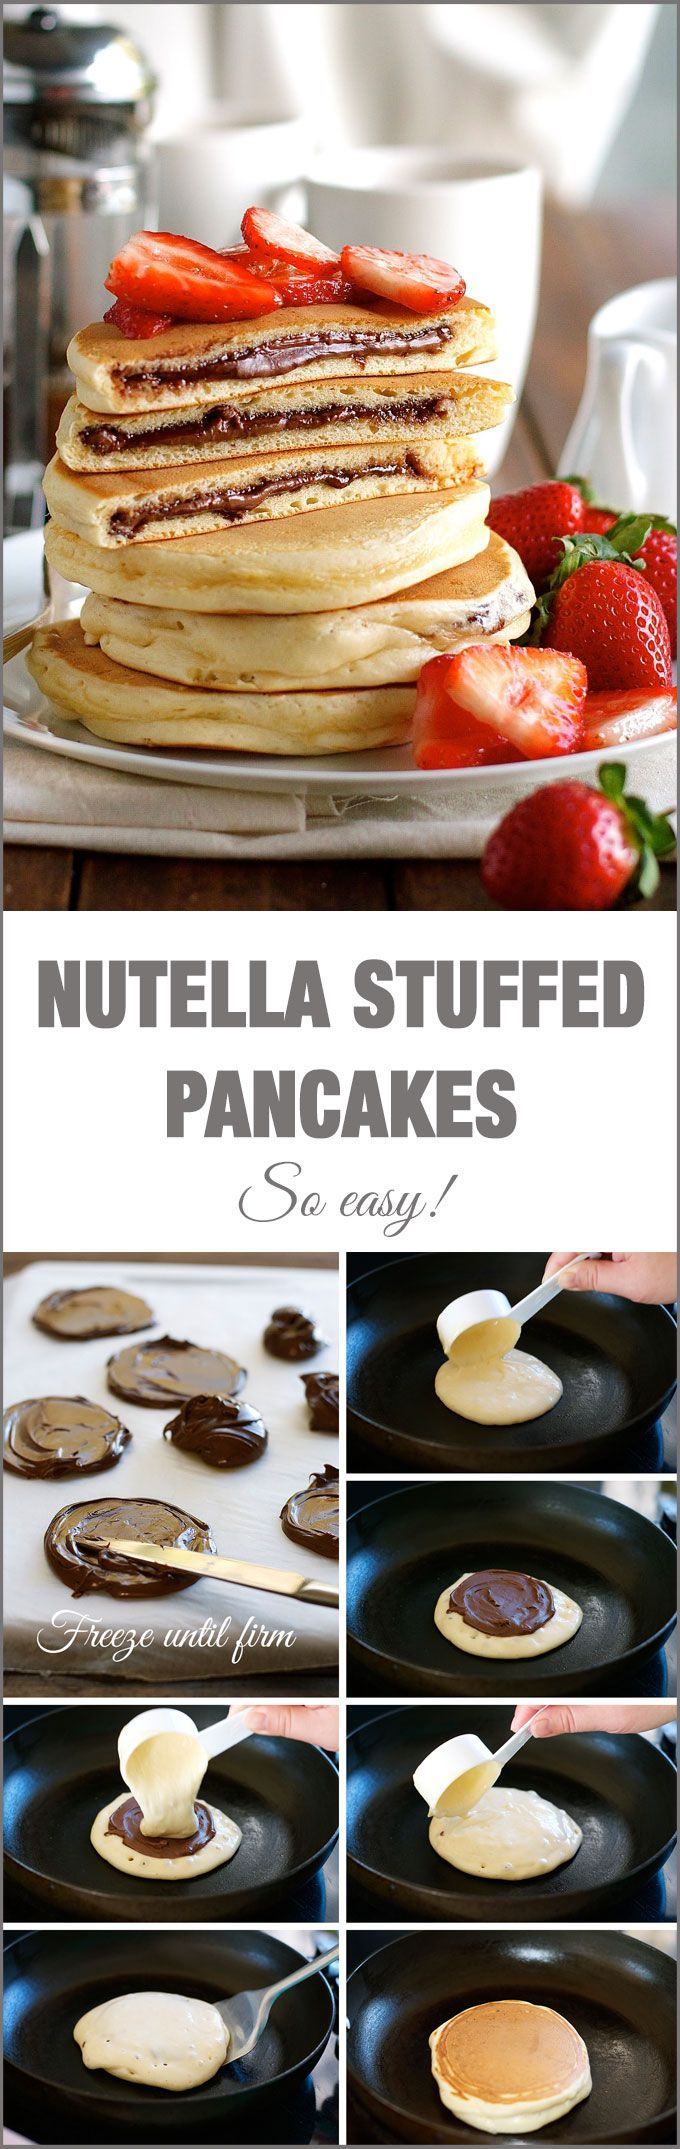 Como fazer panquecas recheadas de Nutella, gordelícia total! - {Nutella Stuffed Pancakes - frozen Nutella discs makes it a breeze to make the Nutella stuffed pancakes!}